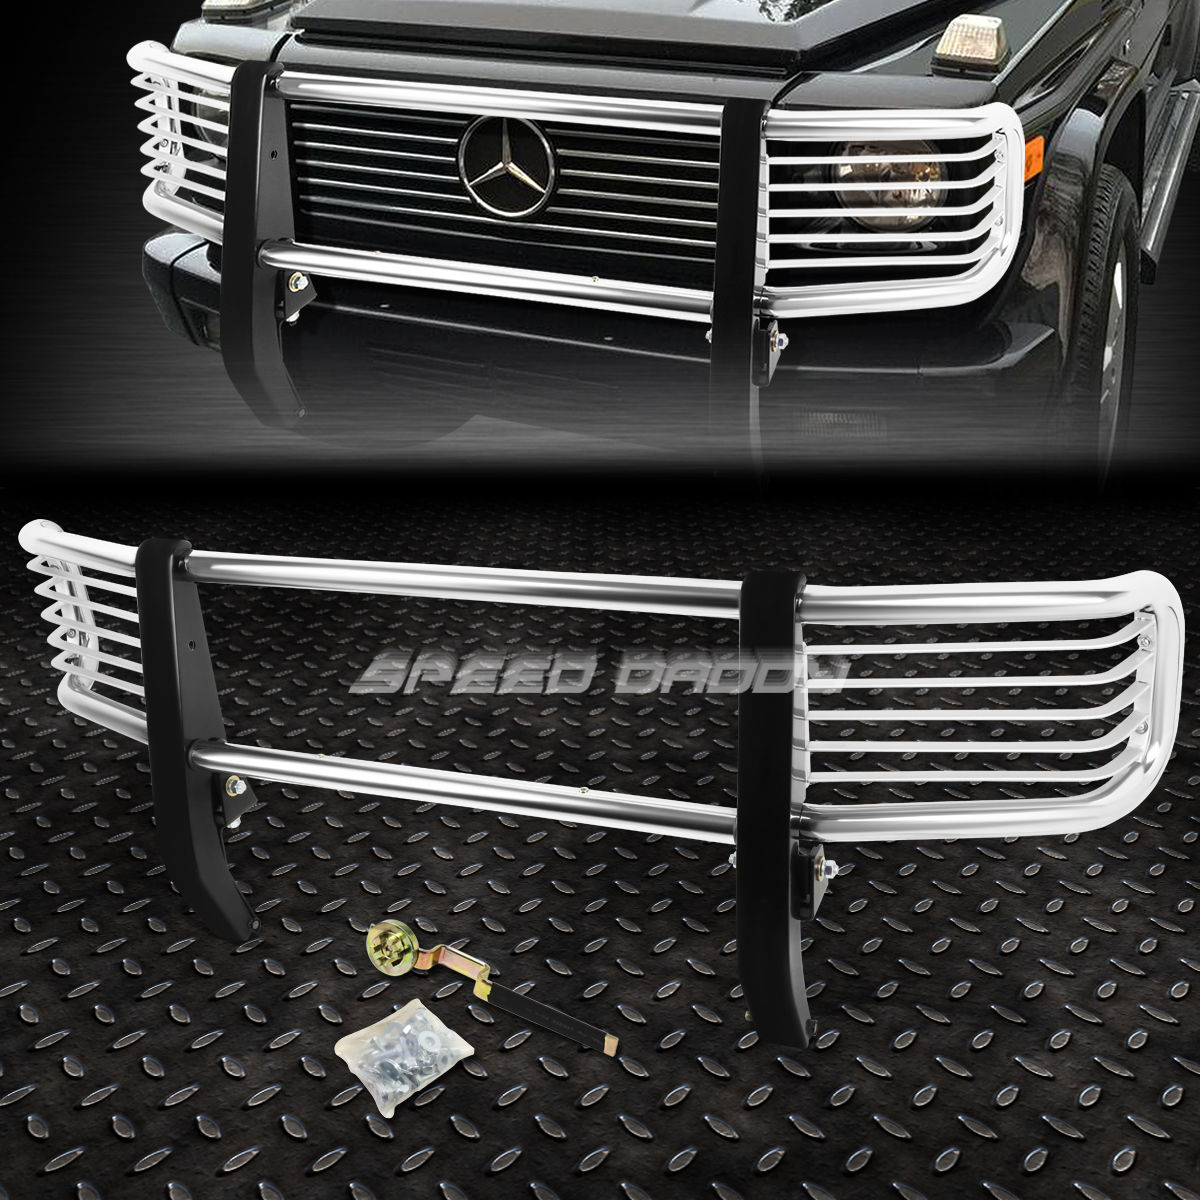 グリル CHROME STEELESS STEELフロントバンパーグリルガード99-12 GクラスW463 G500 SUV CHROME STAINLESS STEEL FRONT BUMPER GRILL GUARD FOR 99-12 G-CLASS W463 G500 SUV